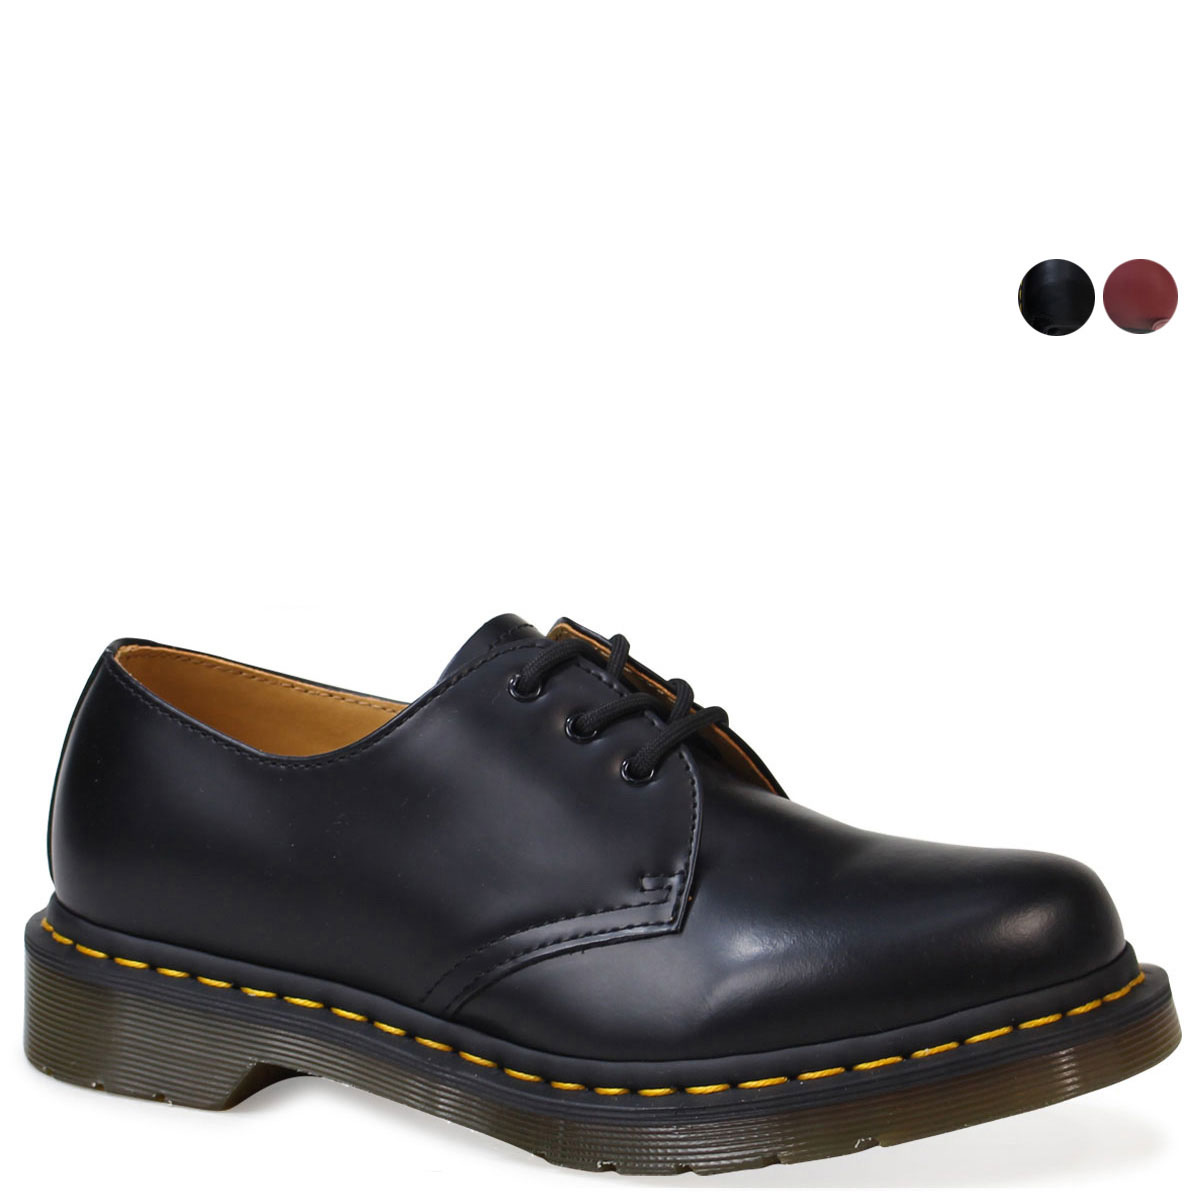 ALLSPORTS  «Reservation goods» «10   22 around stock» Dr. Martens 1461  WOMENS 3 Dr.Martens Hall shoes 11837002 11837600 MATERIAL UPDATES Leather  Womens mens ... 0ac4fddb5712